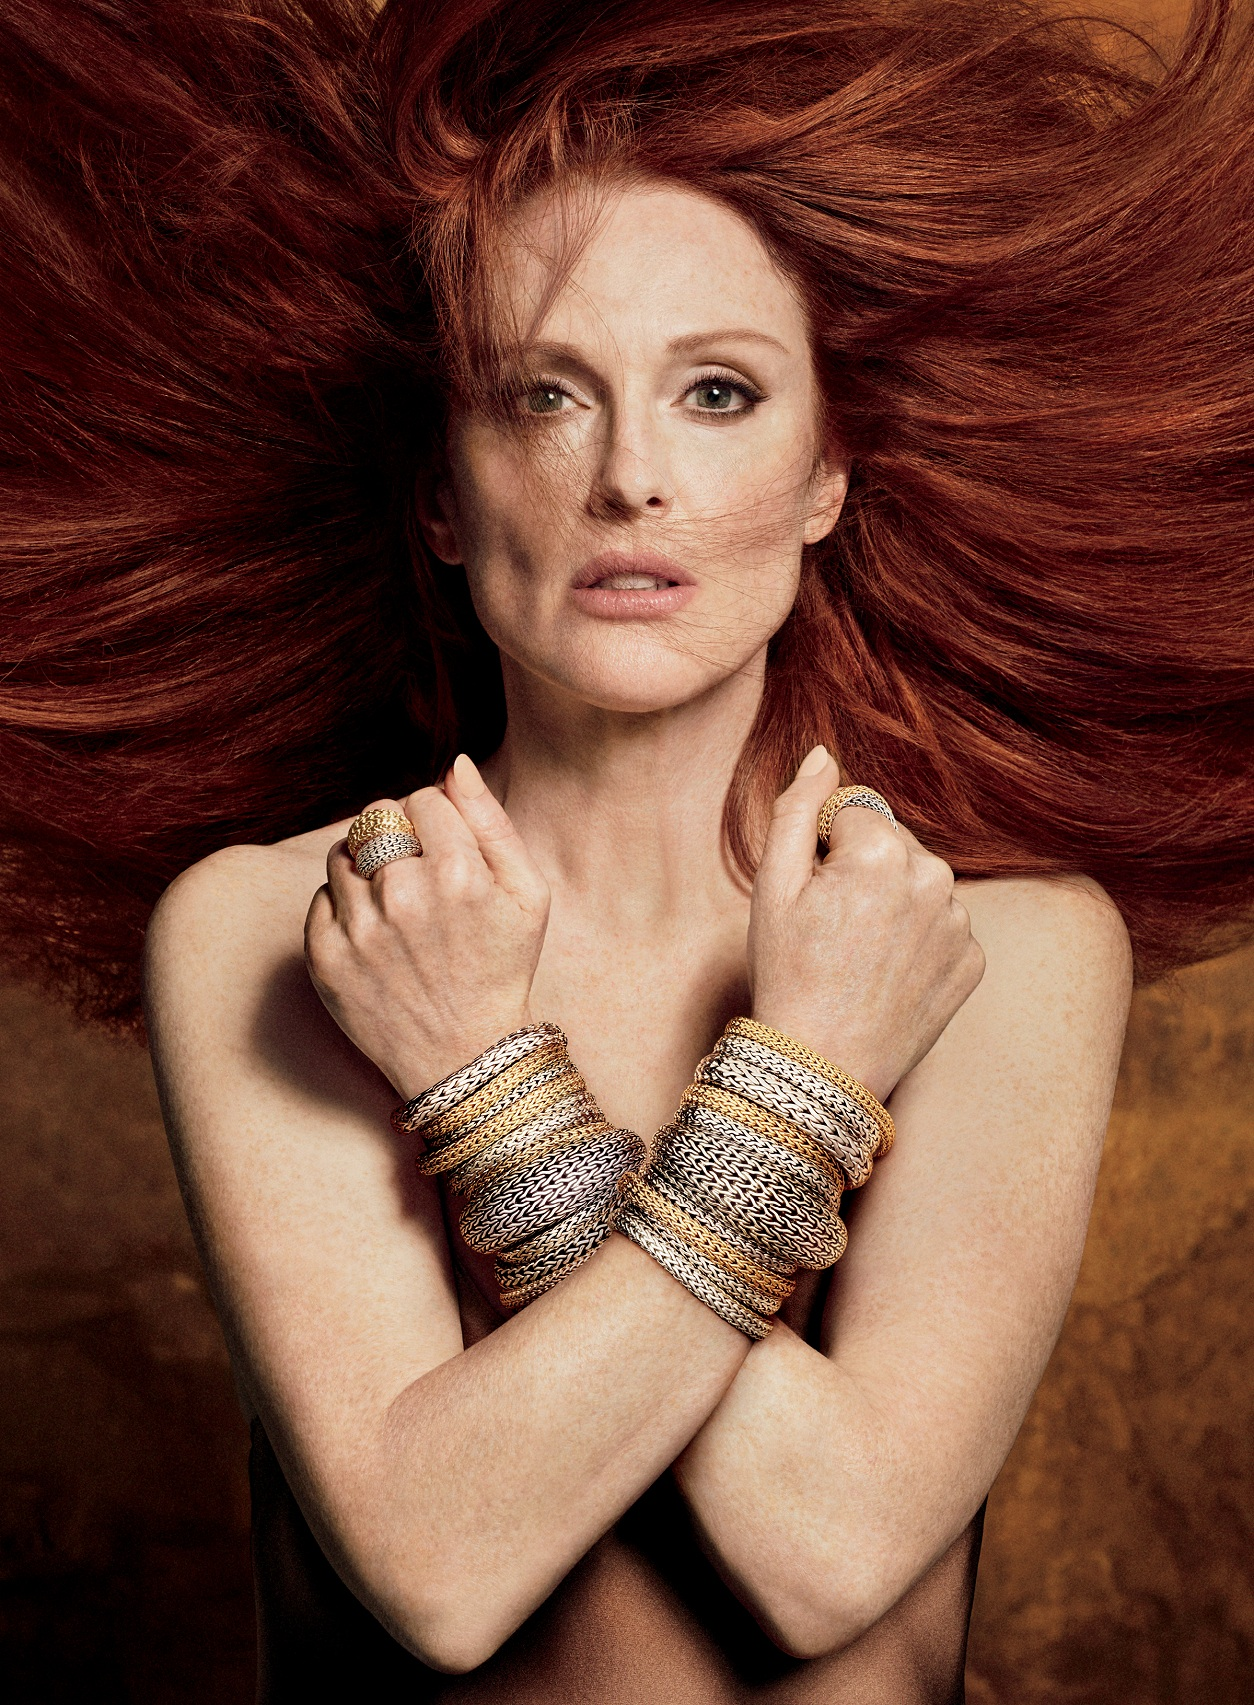 Julianne Moore Hot Pictures Are Here Bring Back The Joy In ...